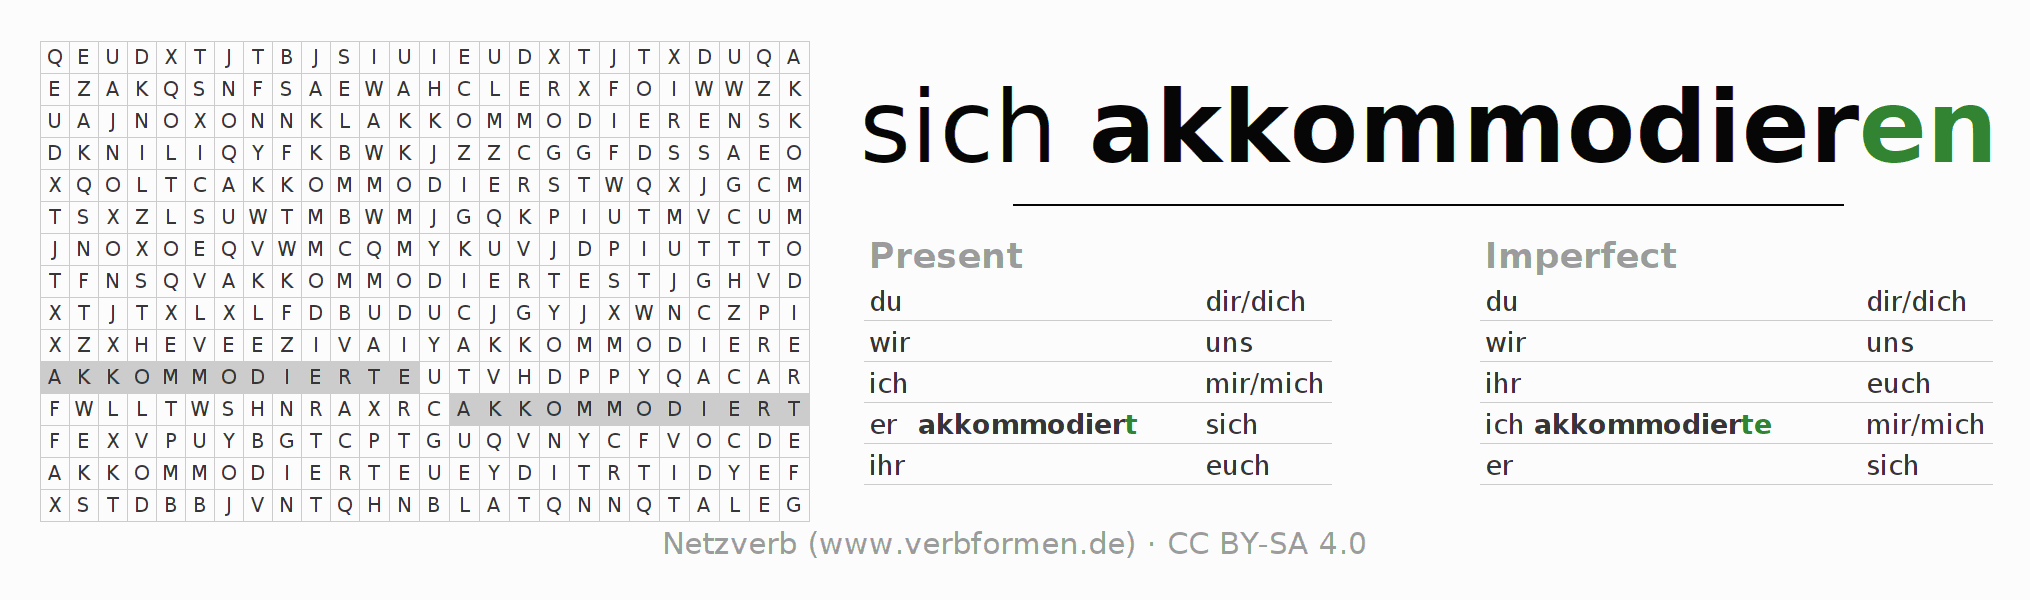 Word search puzzle for the conjugation of the verb sich akkommodieren